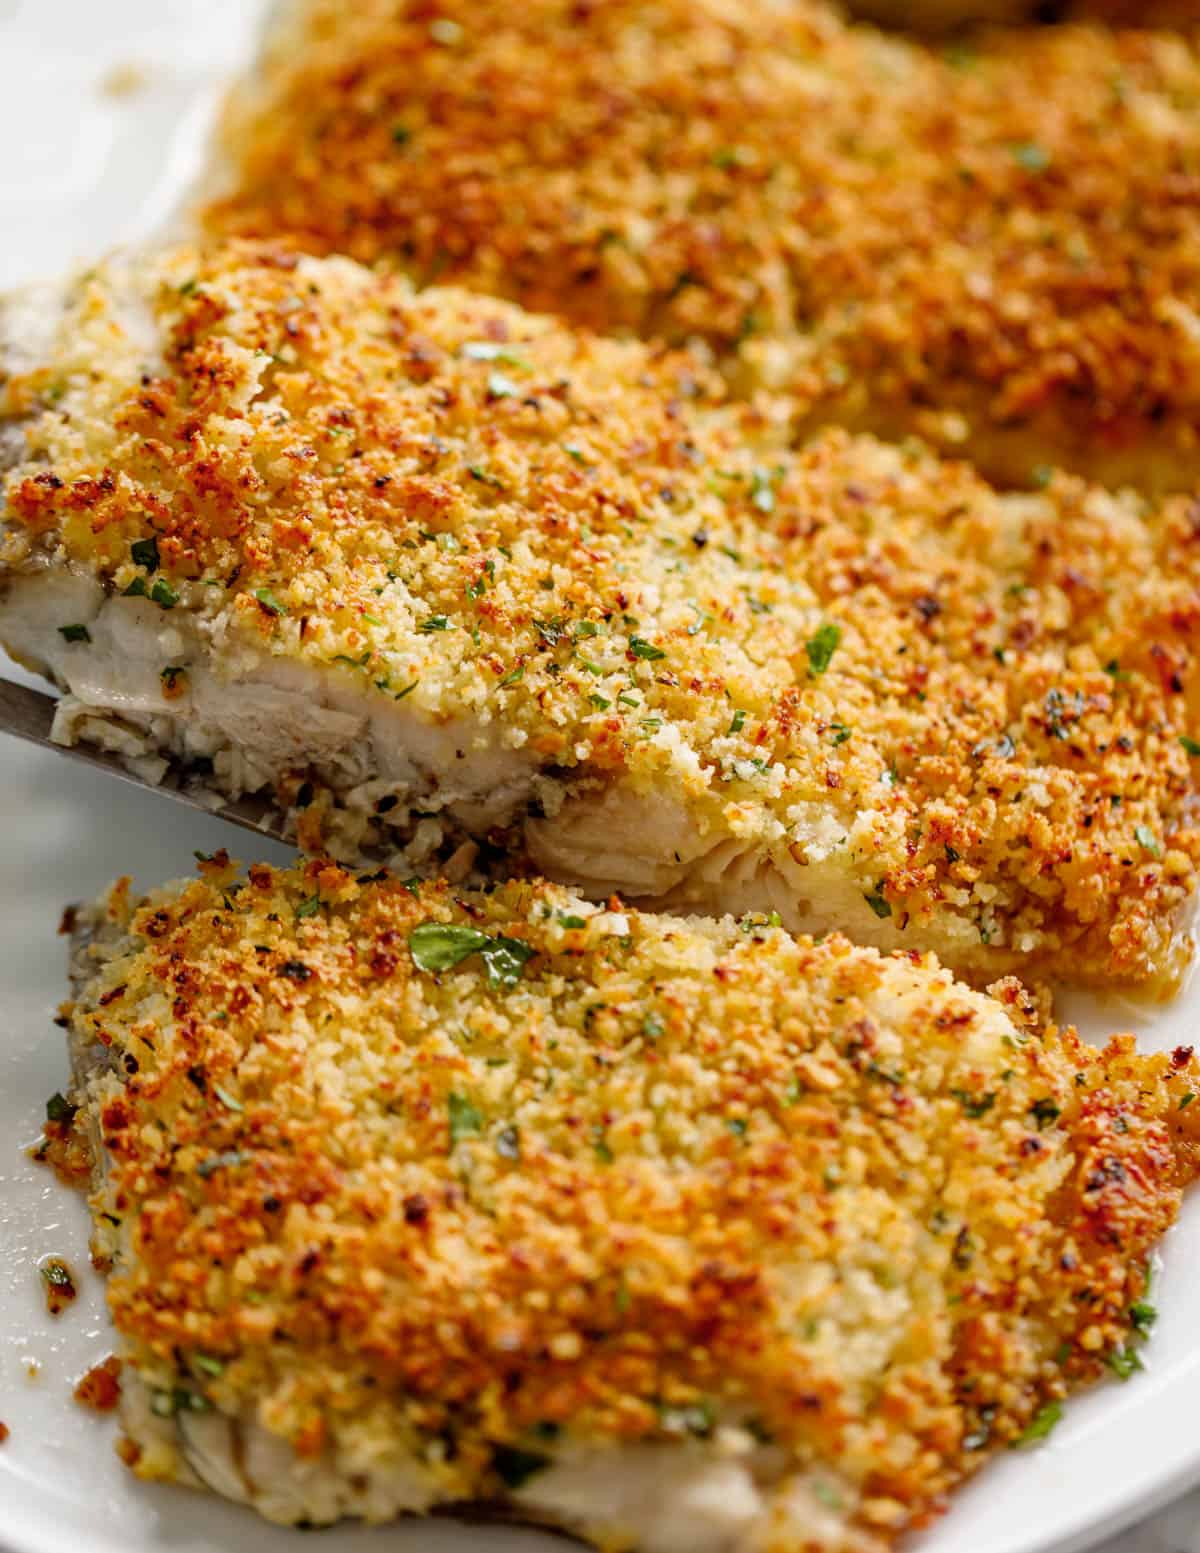 Garlic Parmesan Crumbed Fish Cafe Delites